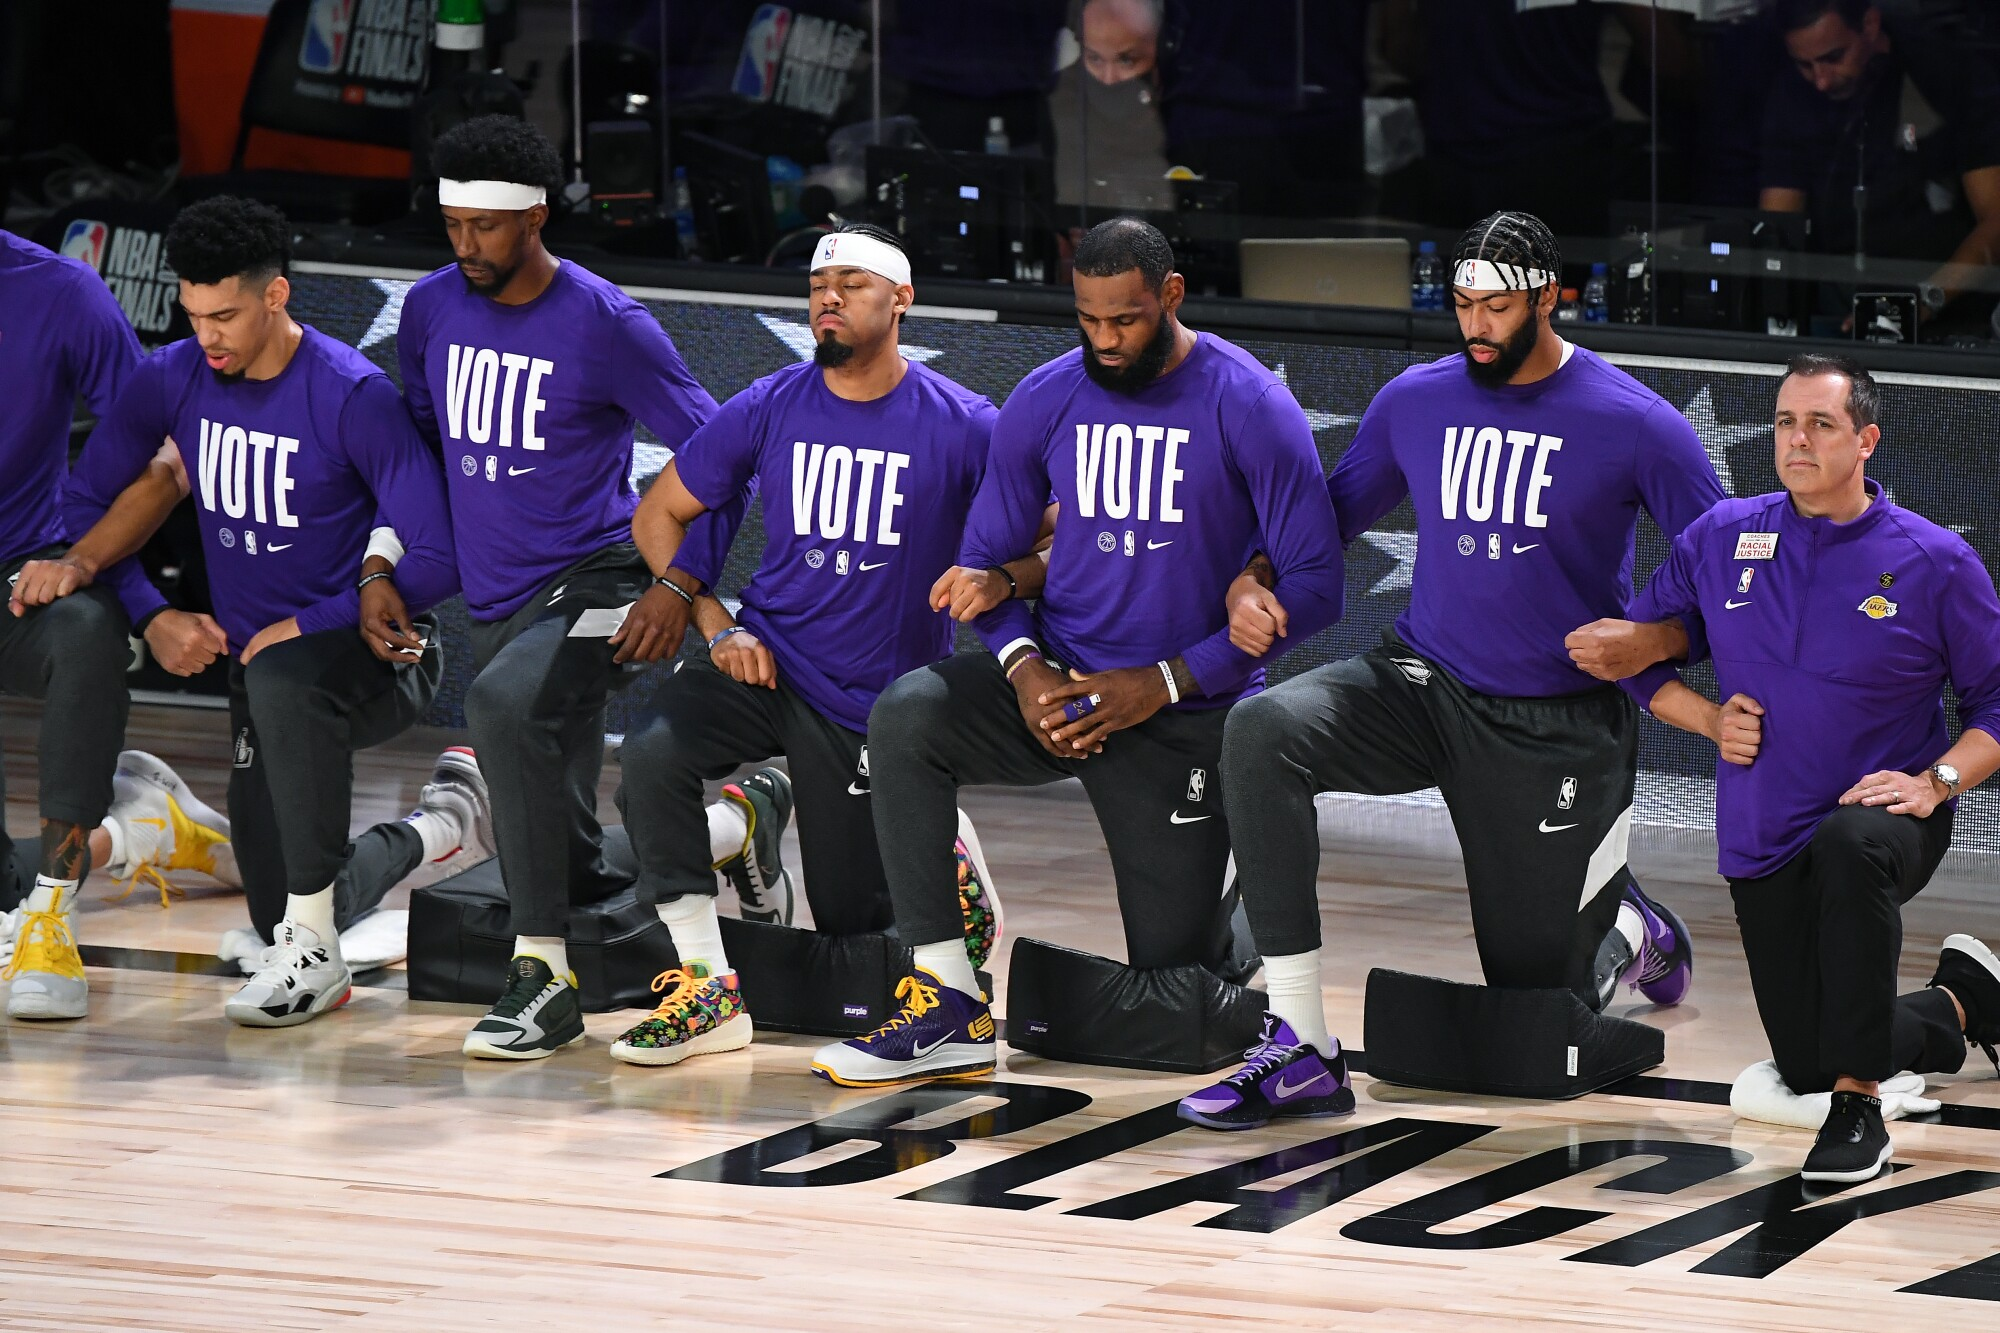 ORLANDO, FLORIDA SEPTEMBER 30, 2020-Lakers players kneel during the National Anthem before Game 1.